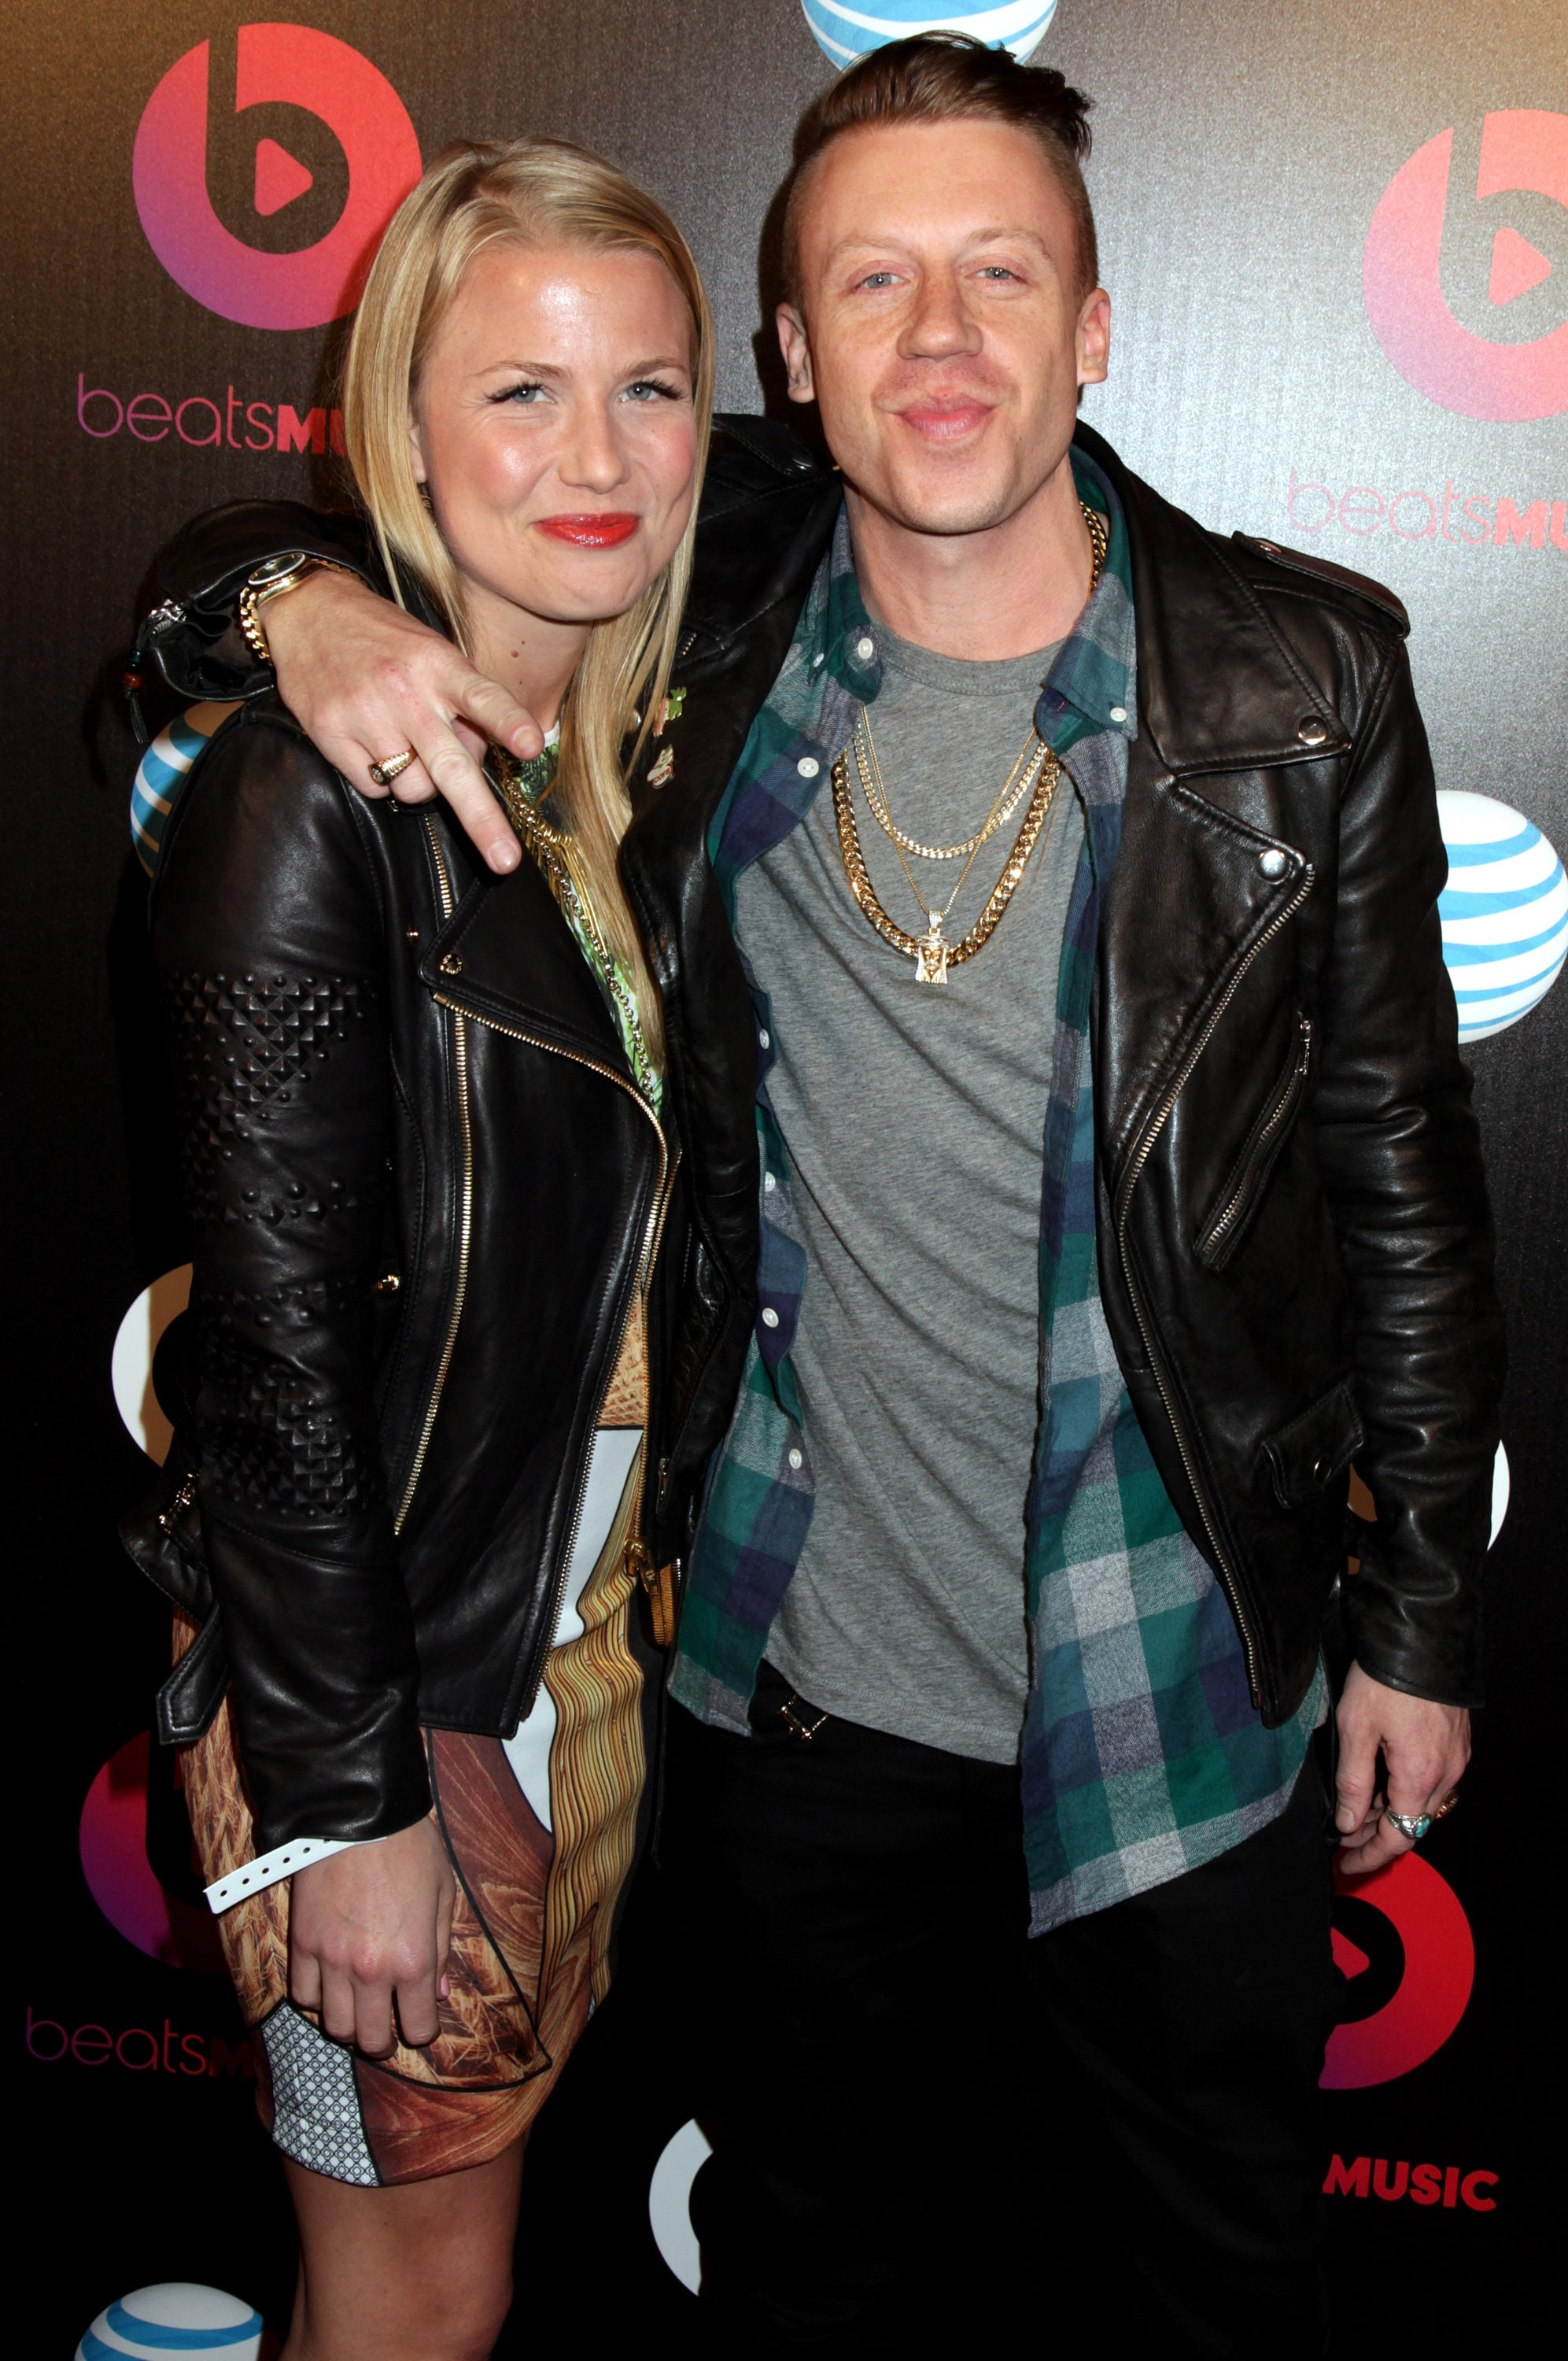 los angeles ca january 24 tricia davis and macklemore at beats by dre